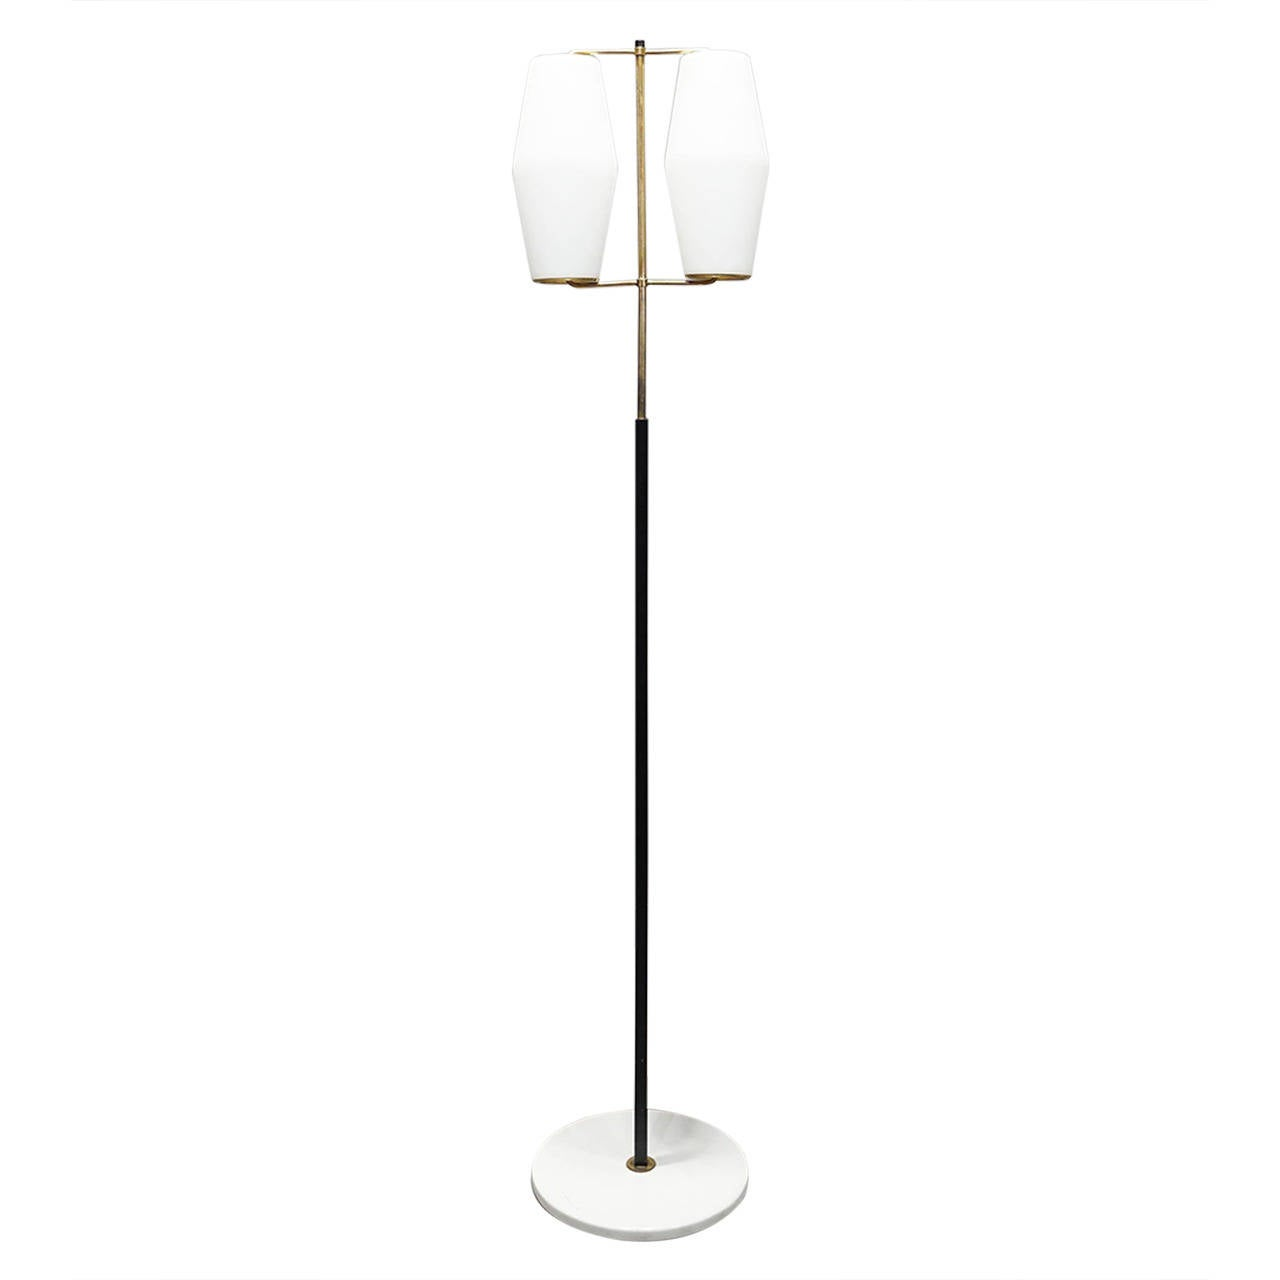 Floor lamp by stilnovo italy circa 1950 for sale at 1stdibs for 1950 floor lamp